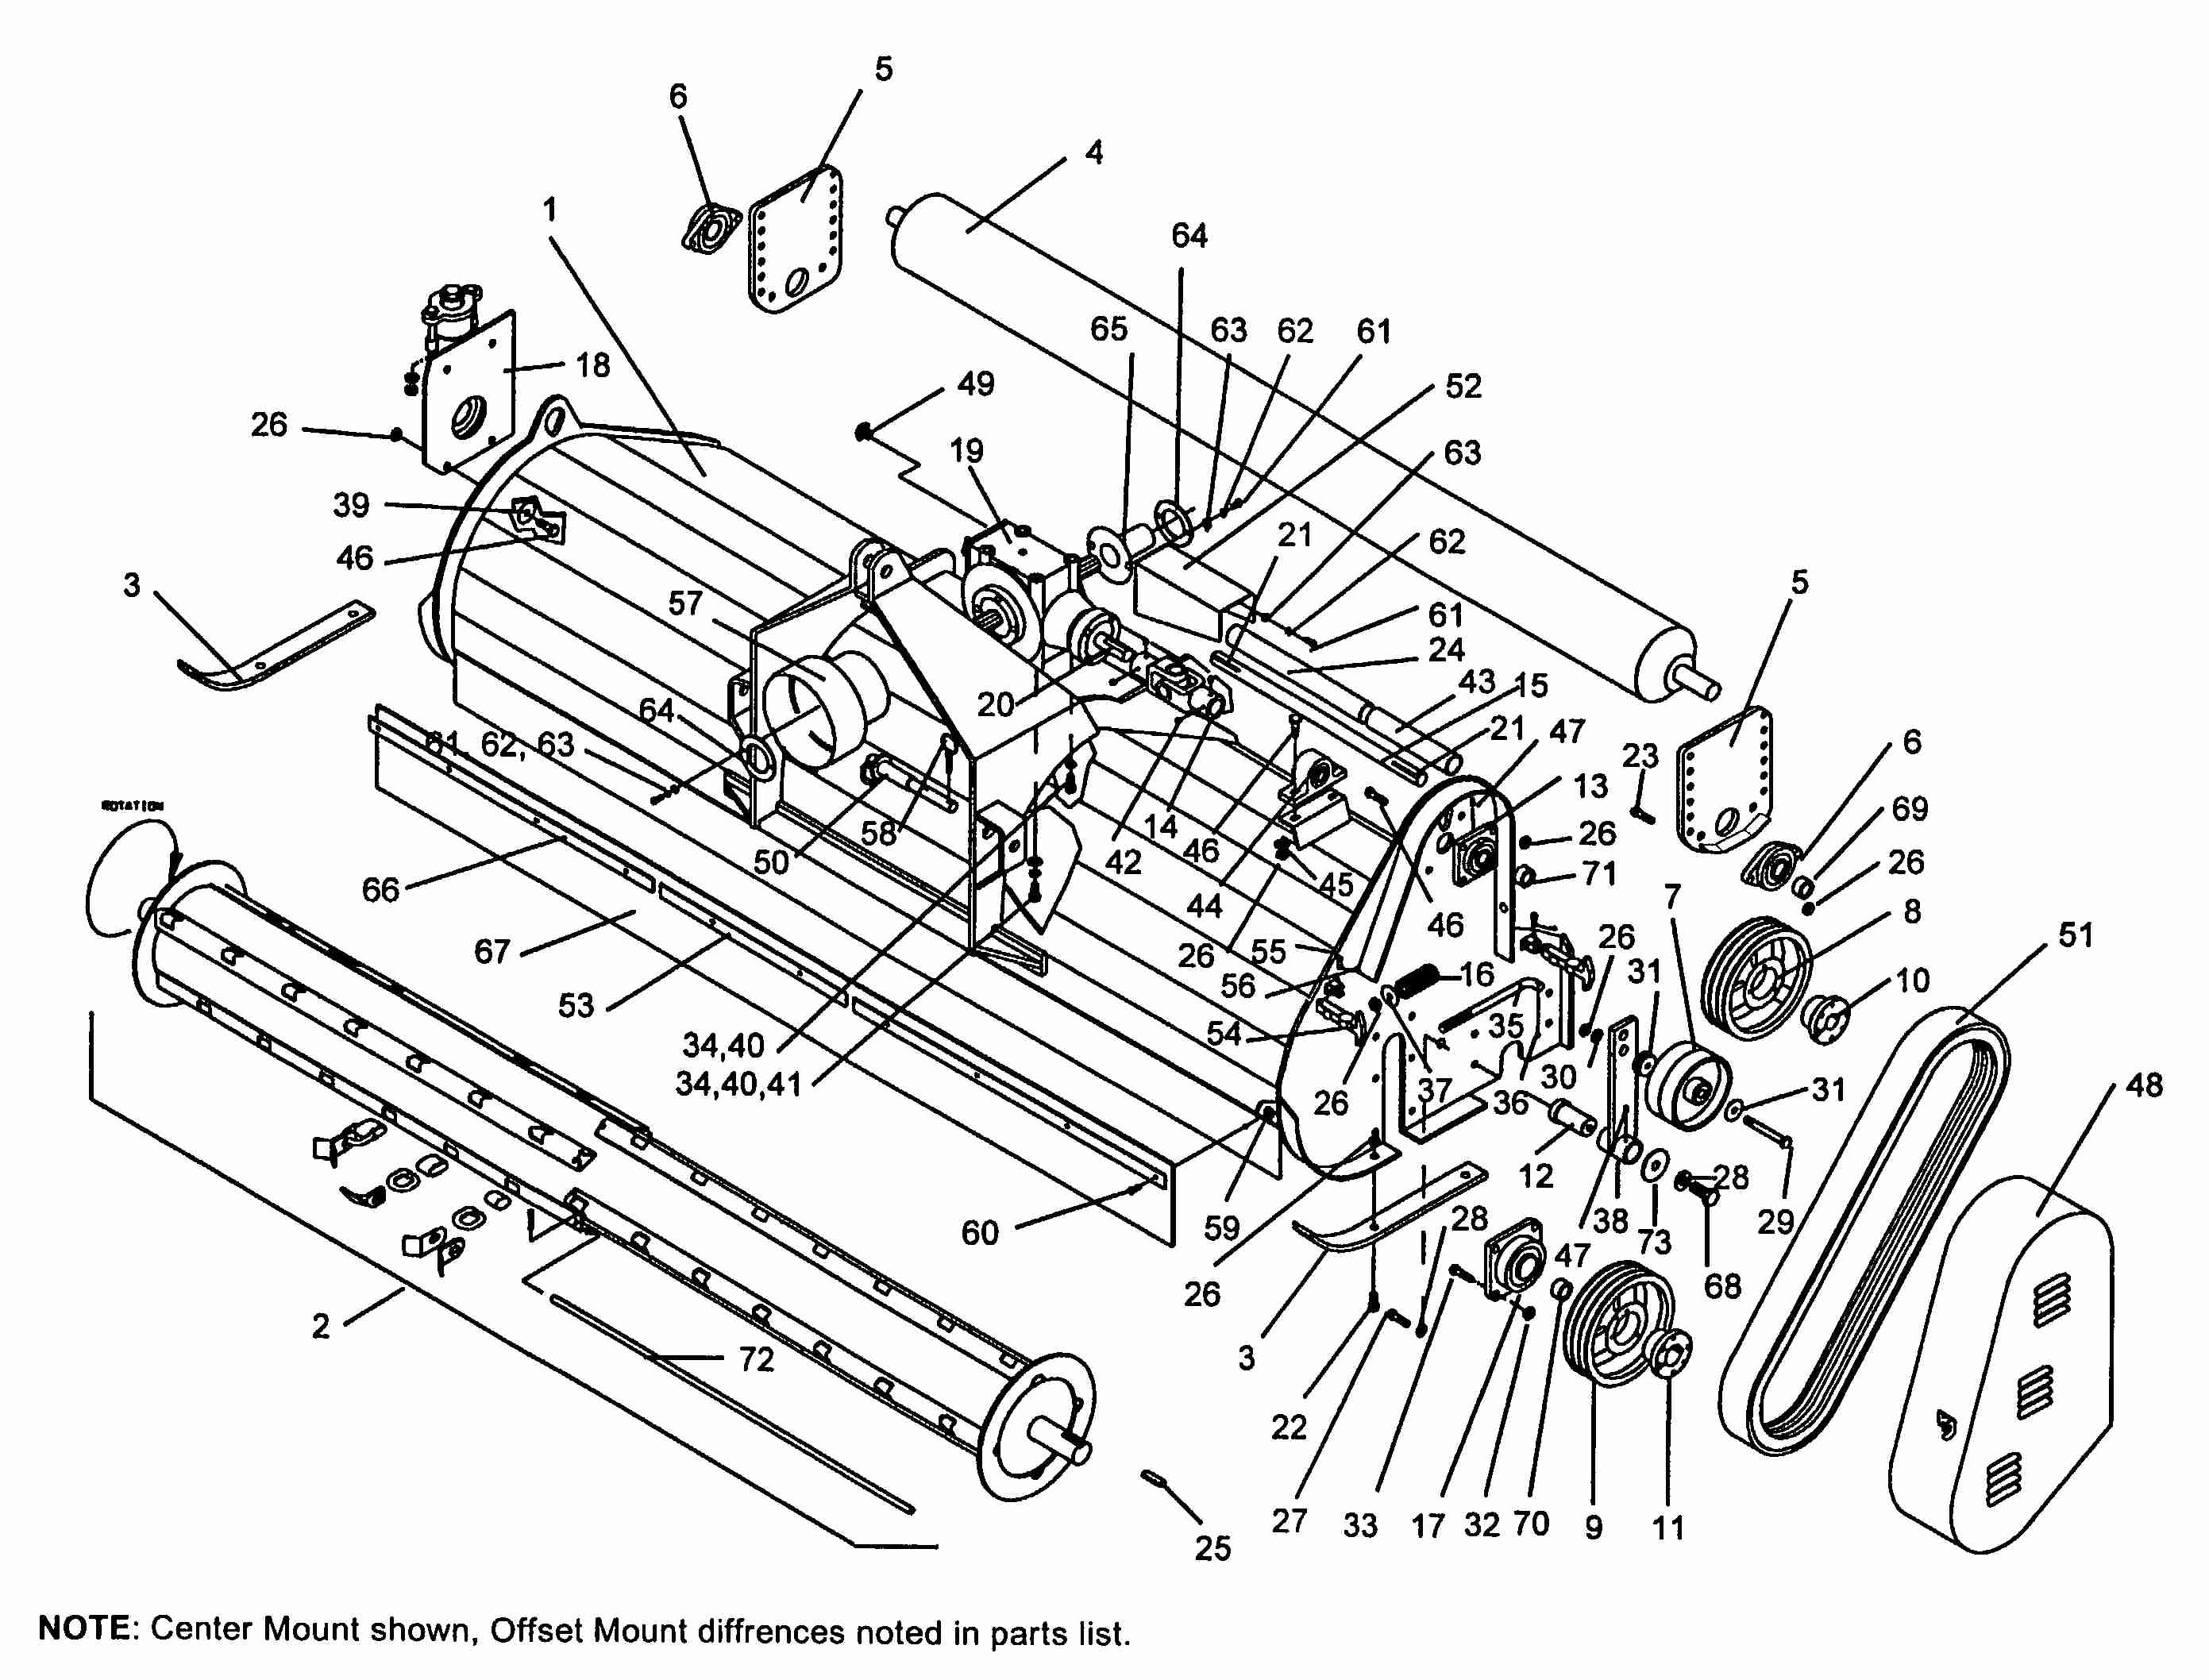 Servis Rhino ORC/6-15 SN 10001-Current Flail Mower GENERAL ASSEMBLY